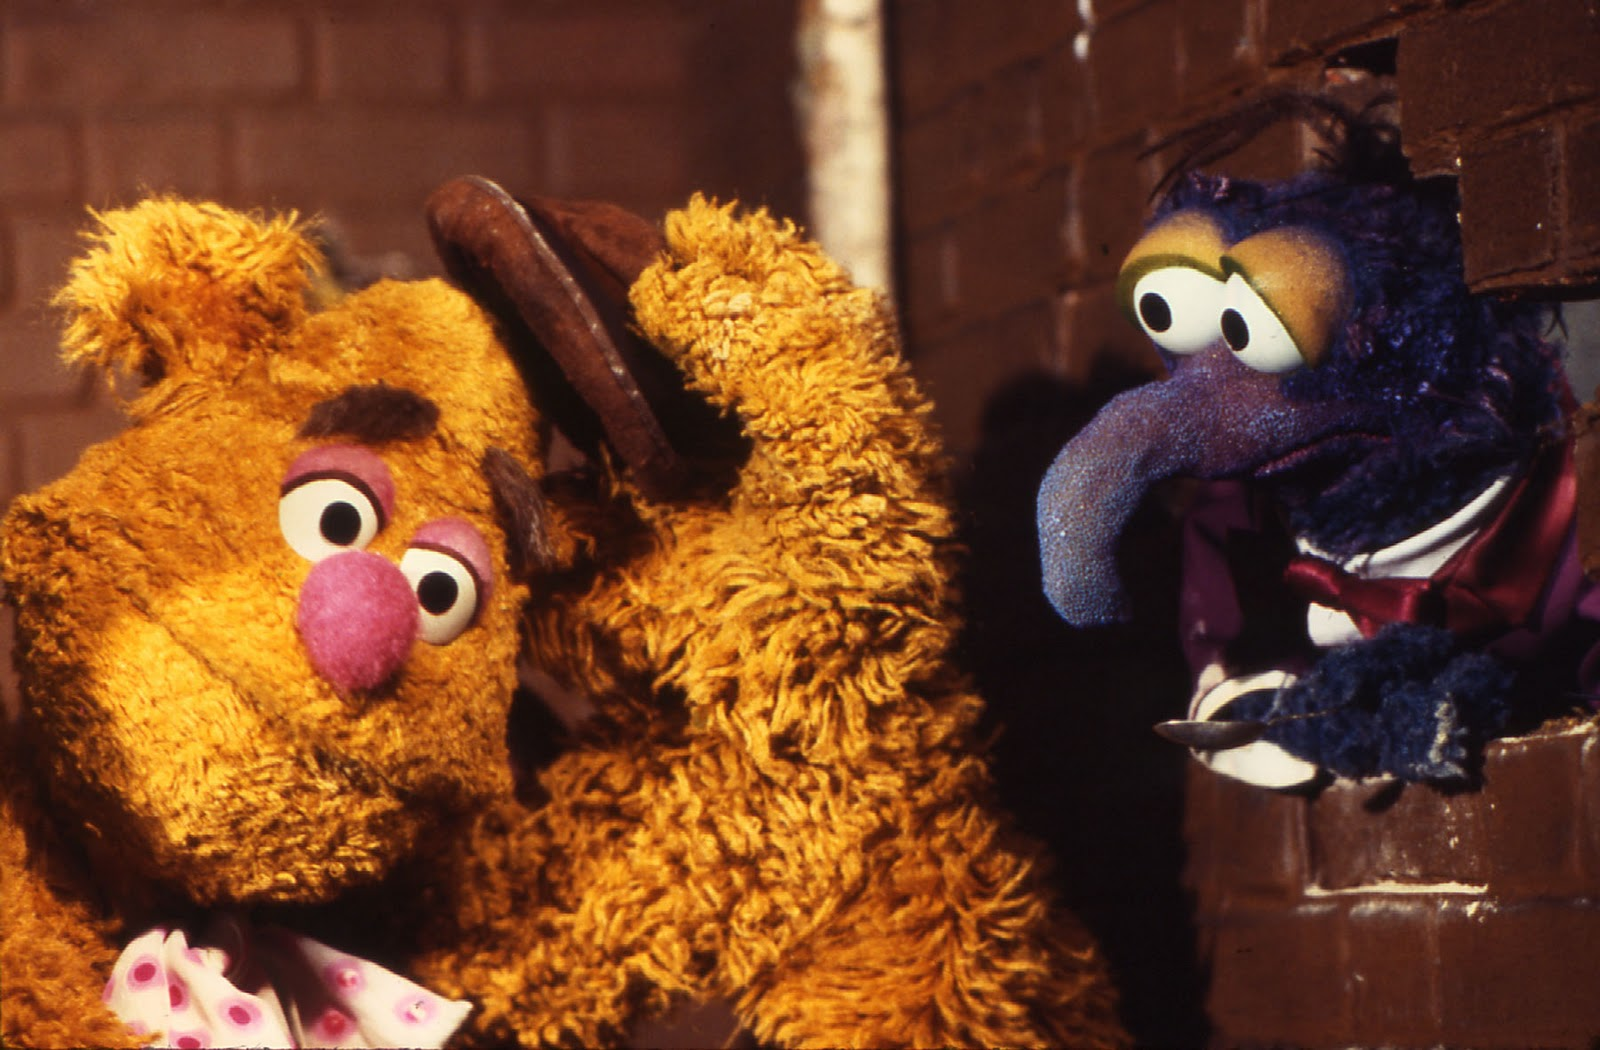 6c The Muppets: The Adult Origins Of 'Mahna Mahna' And More Things You Didn't Know